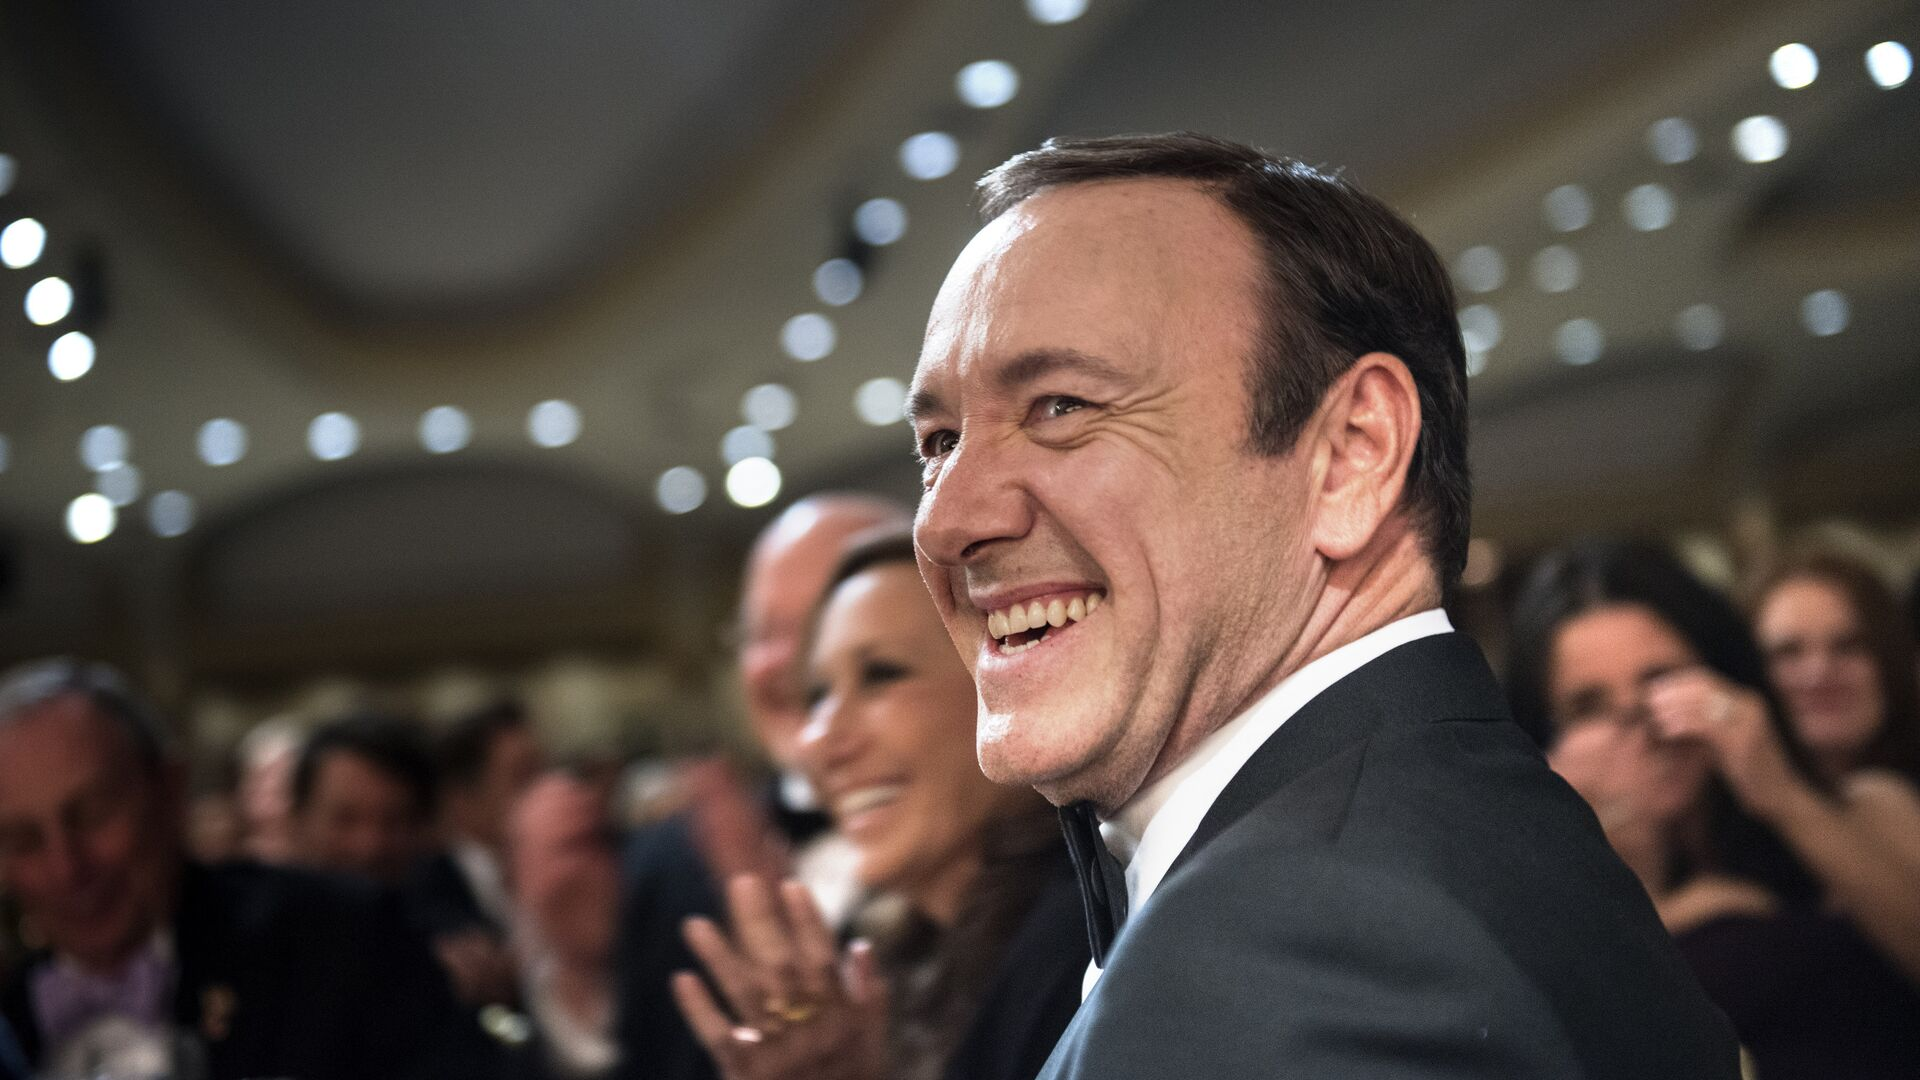 Actor Kevin Spacey laughs during the White House Correspondents' Association Dinner April 27, 2013 in Washington, DC. Obama attended the yearly dinner which is attended by journalists, celebrities and politicians. - Sputnik Mundo, 1920, 23.05.2021